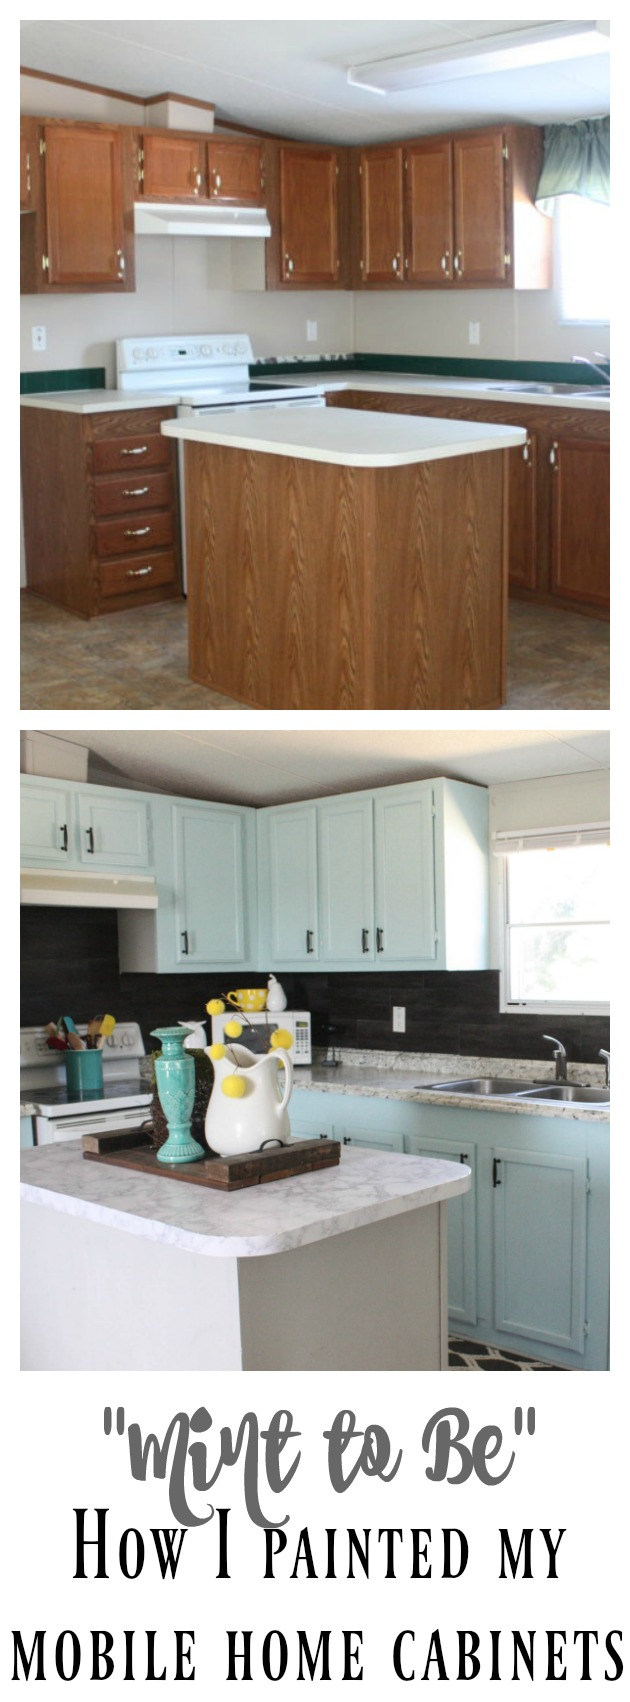 Mobile Home Cabinet Makeover - Re-Fabbed